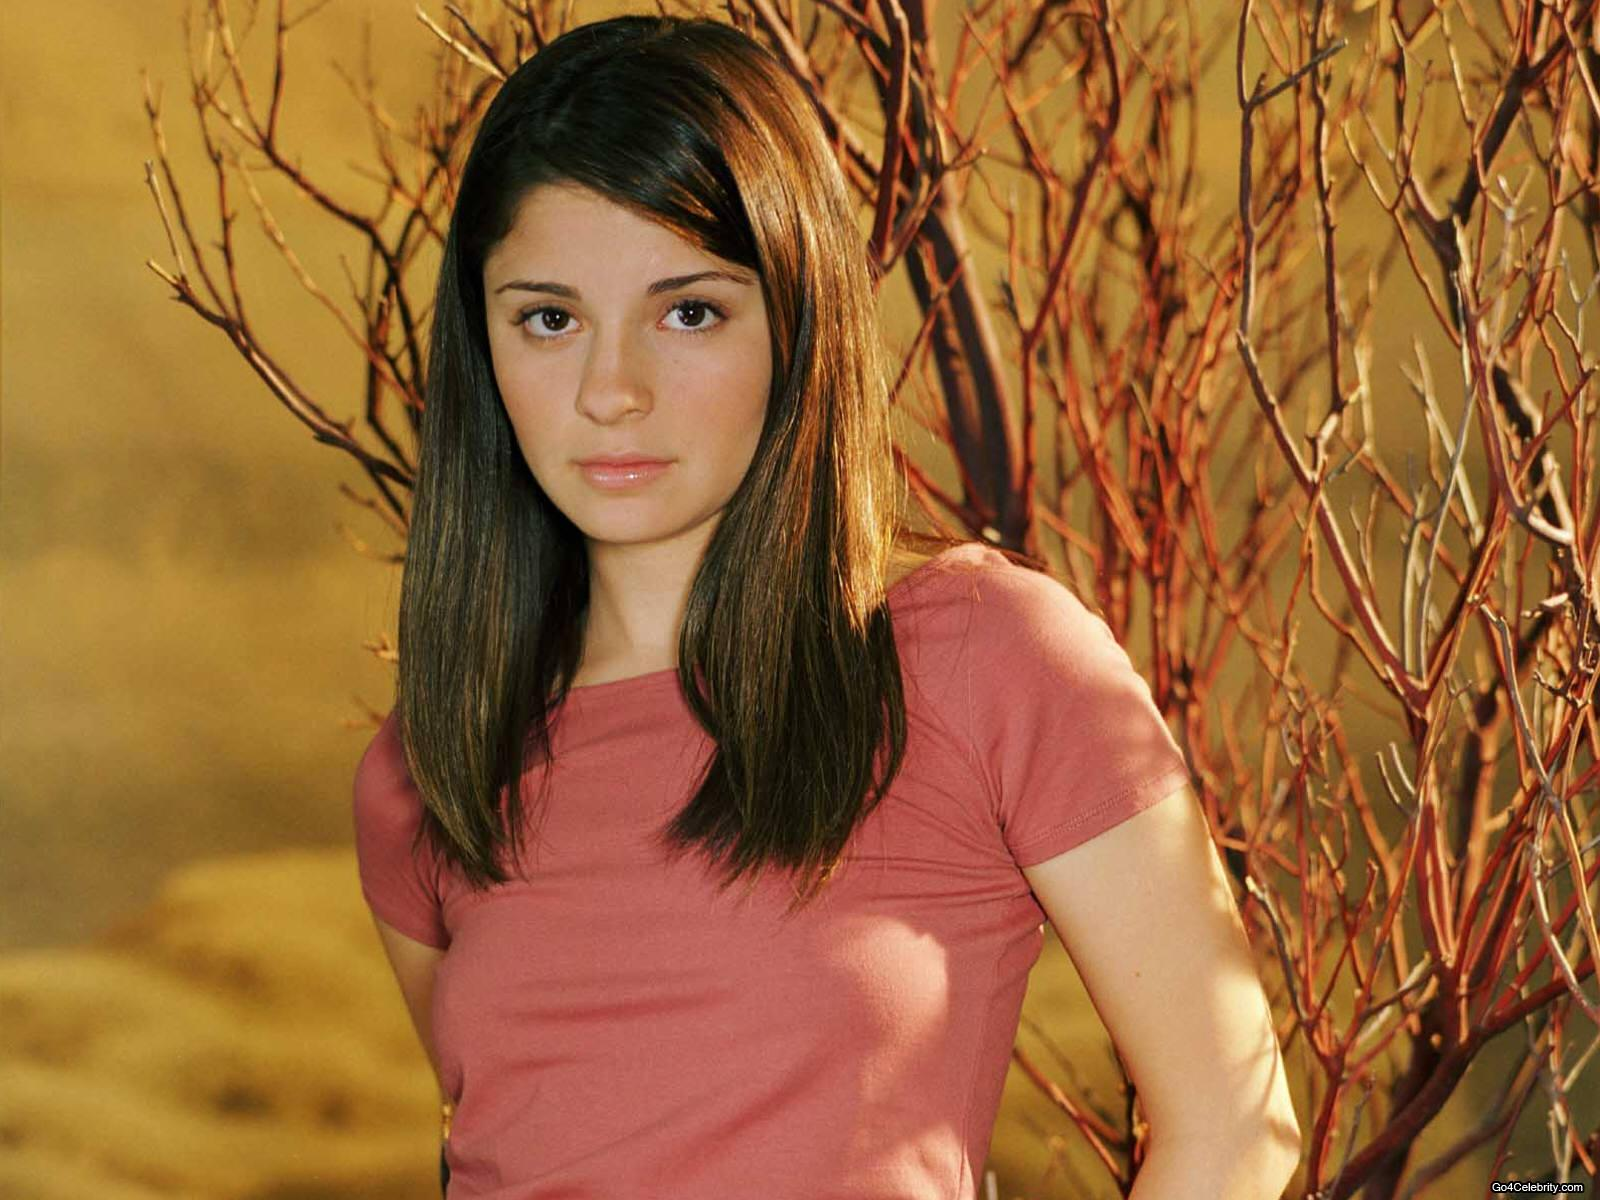 Tyrees Allen Wallpapers SHIRI APPLEBY WALLPAPERS FREE Wallpapers Background images